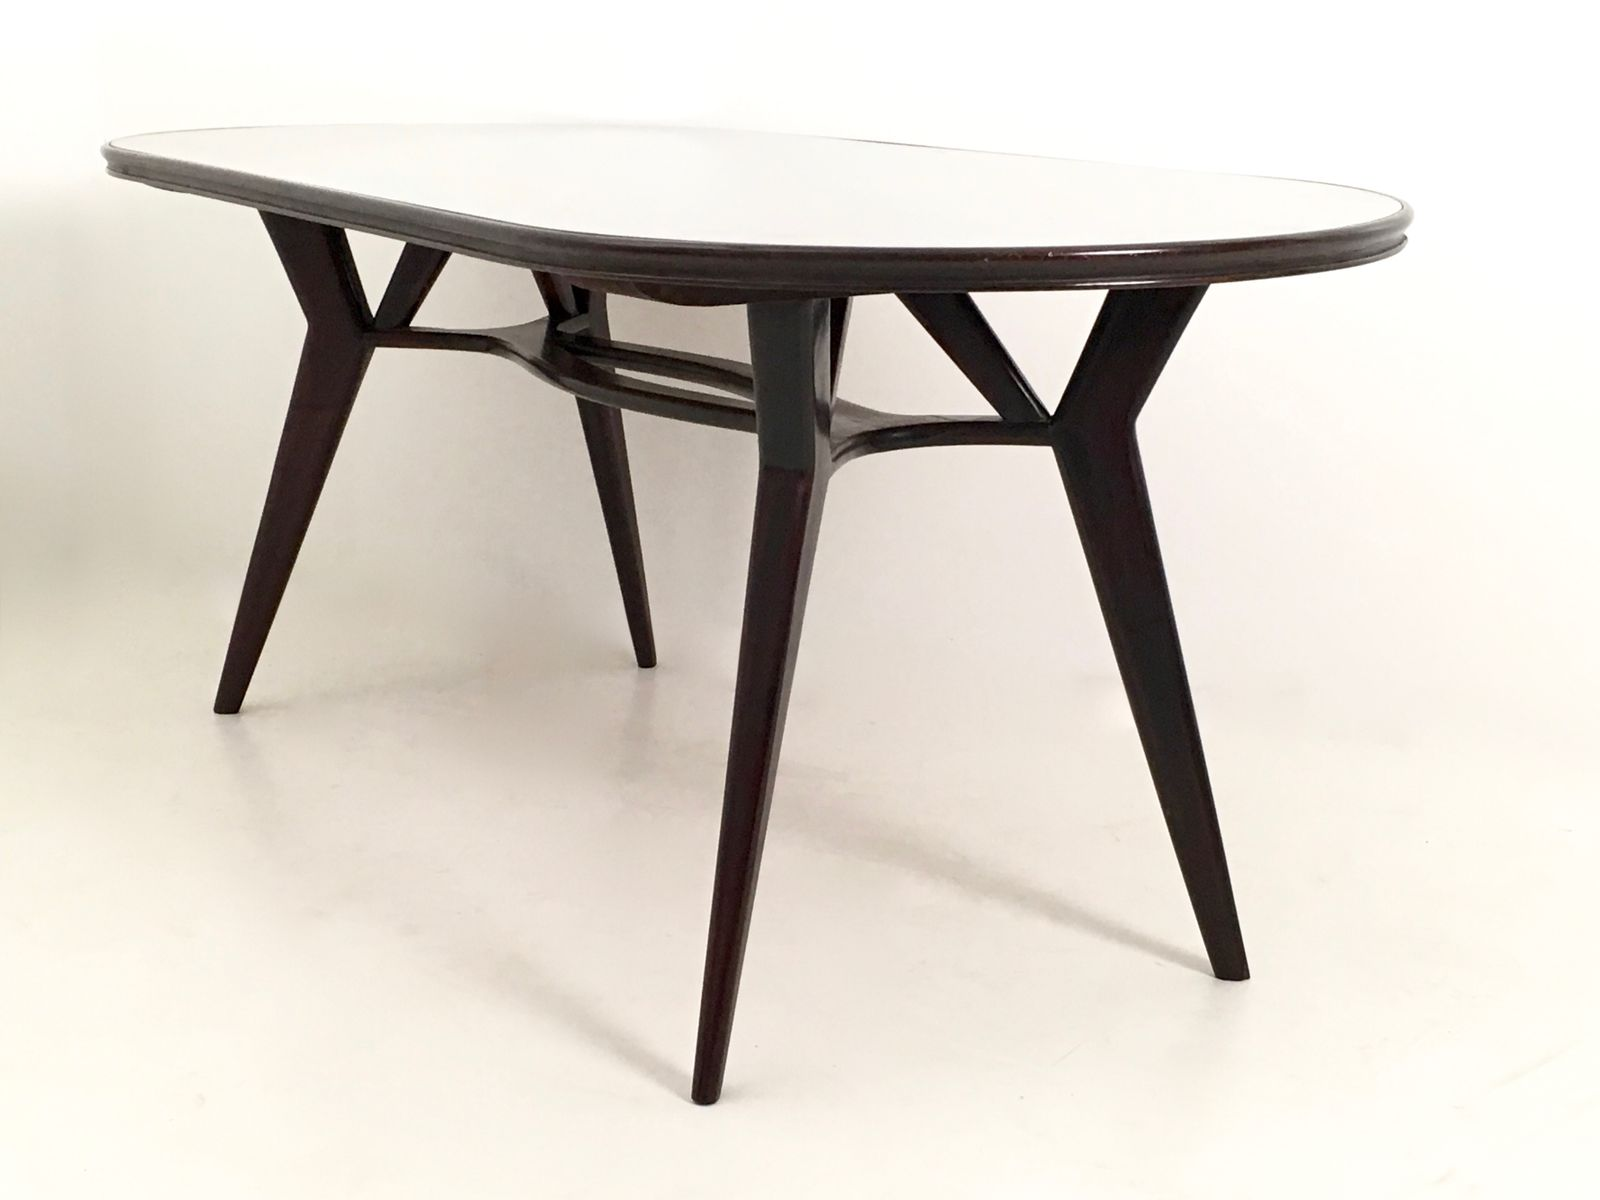 Table De Salon Asiatique # Table Palissandre Poutre